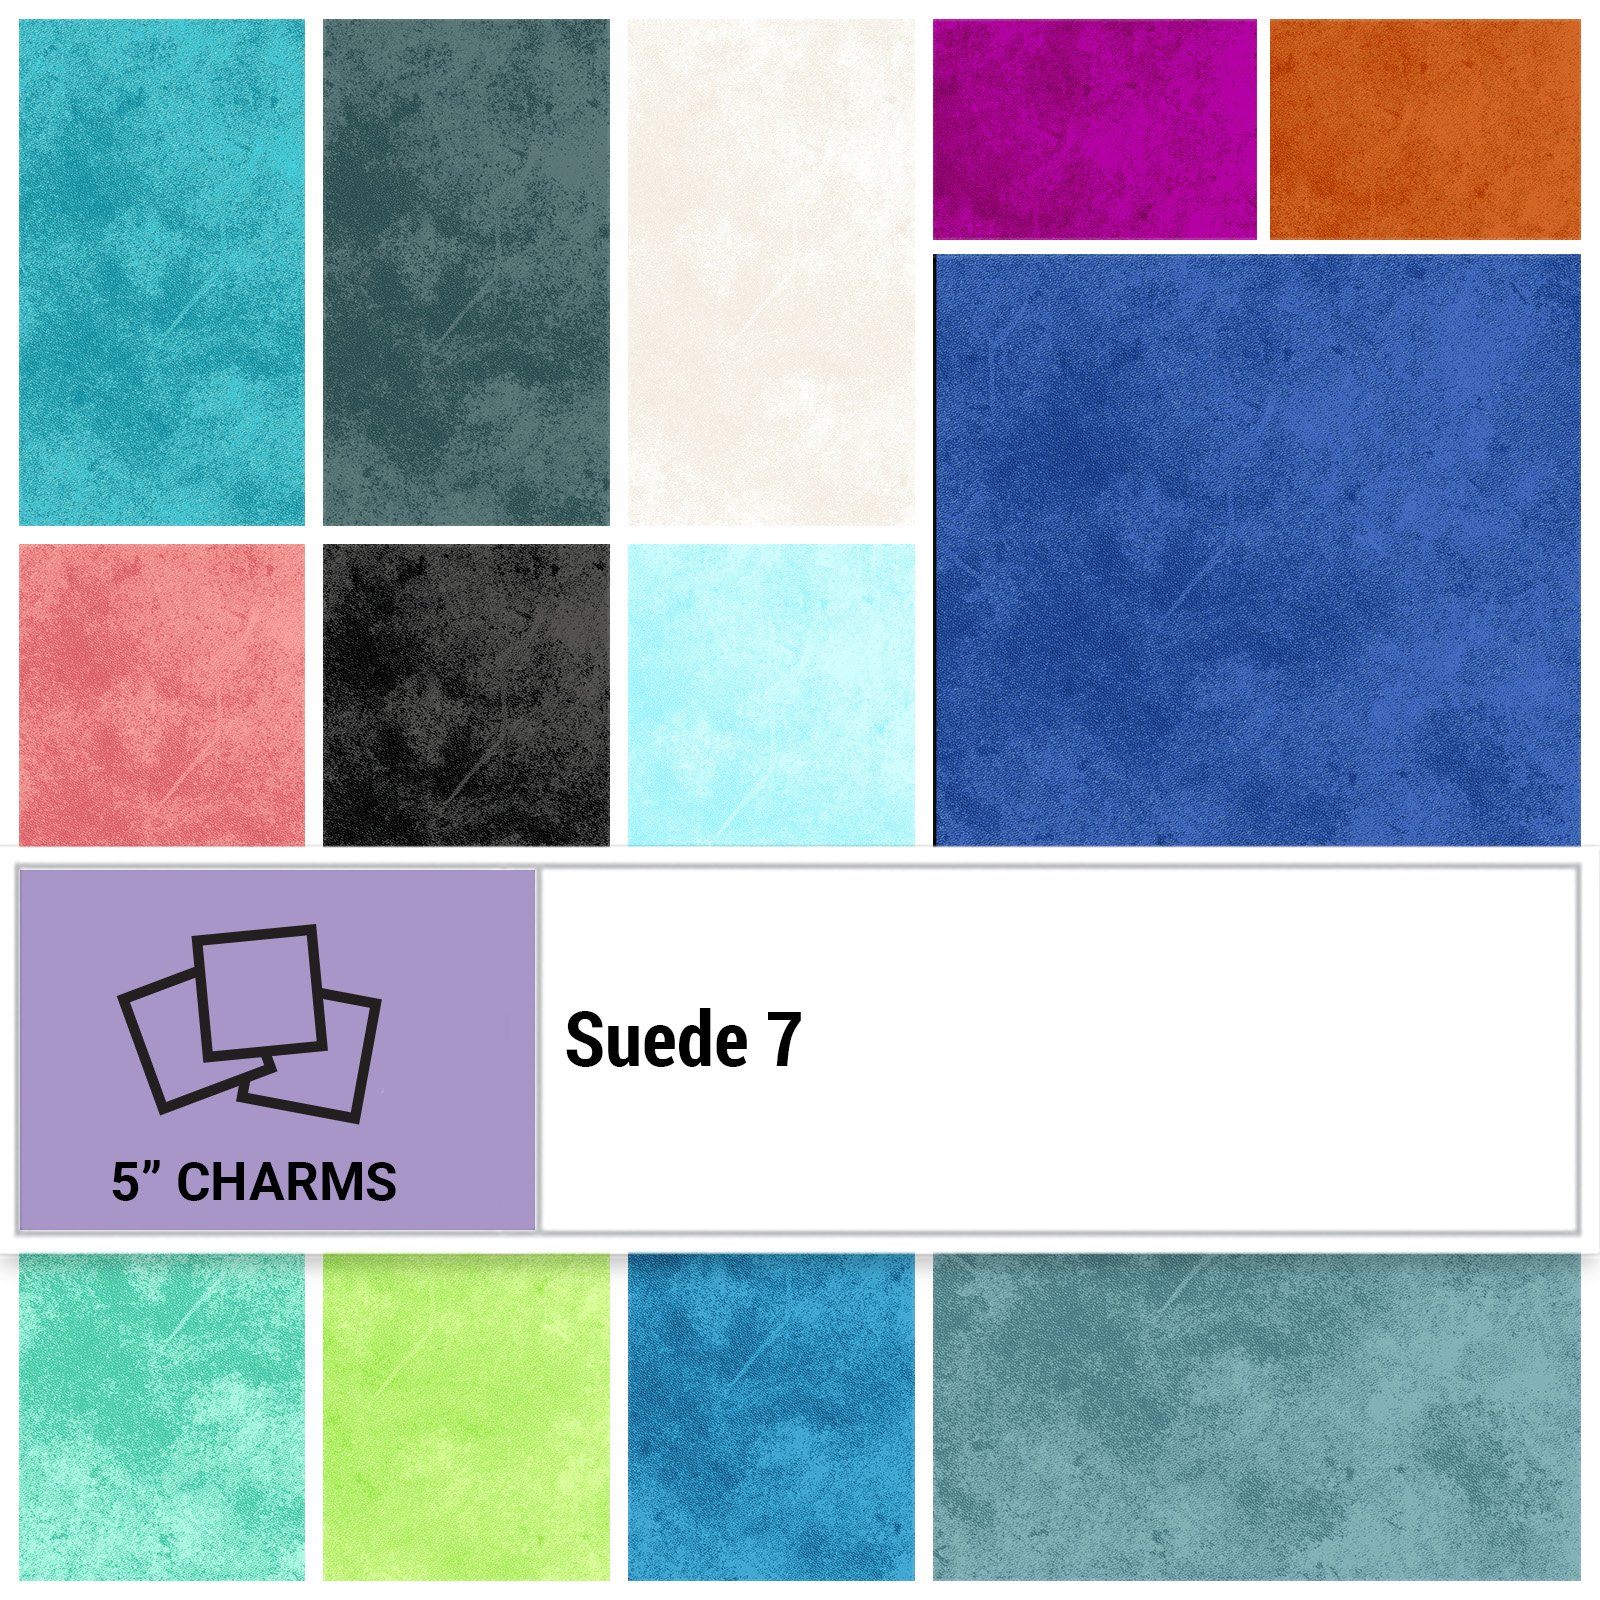 SUE7-005X5 - SUEDE 7 5 SQUARES BY P&B BOUTIQUE 42PCS - ARRIVING IN AUGUST 2021